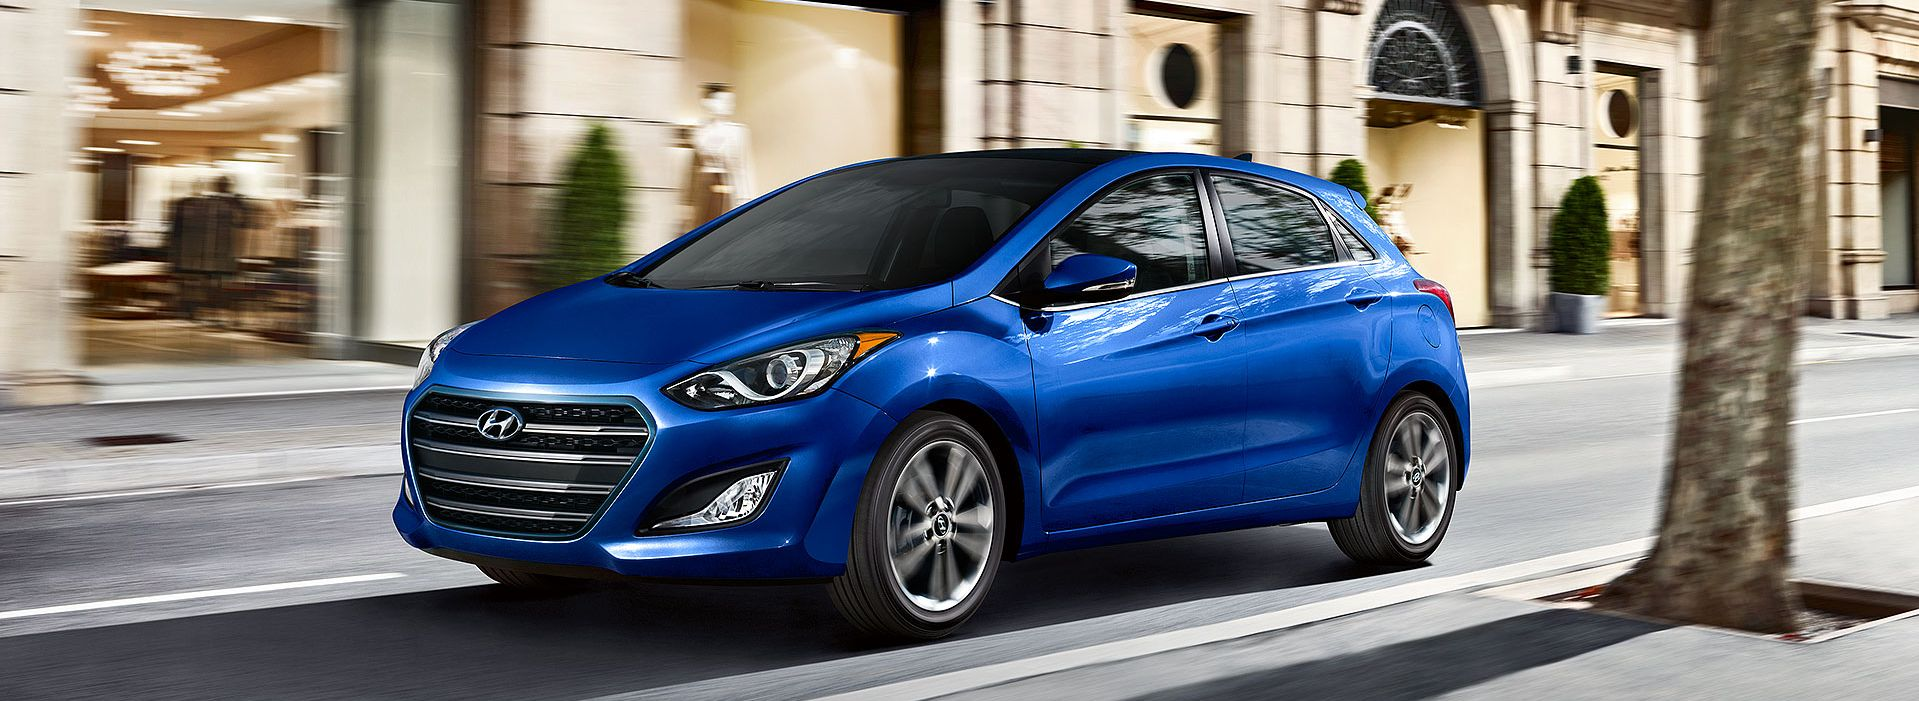 2017 Hyundai Elantra GT for sale near Springfield, VA